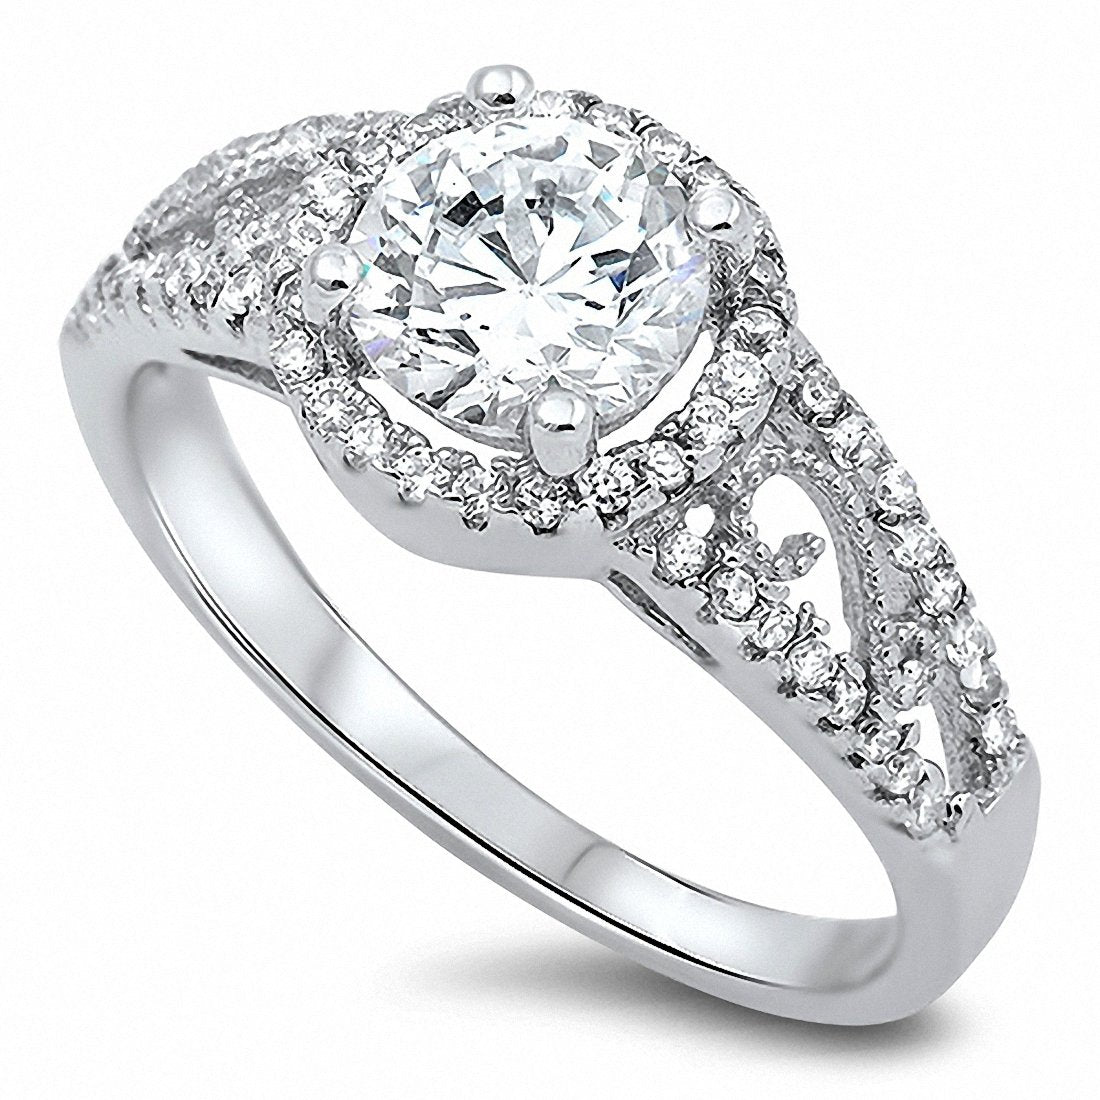 Filigree Engagement Ring Round Cubic Zirconia 925 Sterling Silver Choose Color